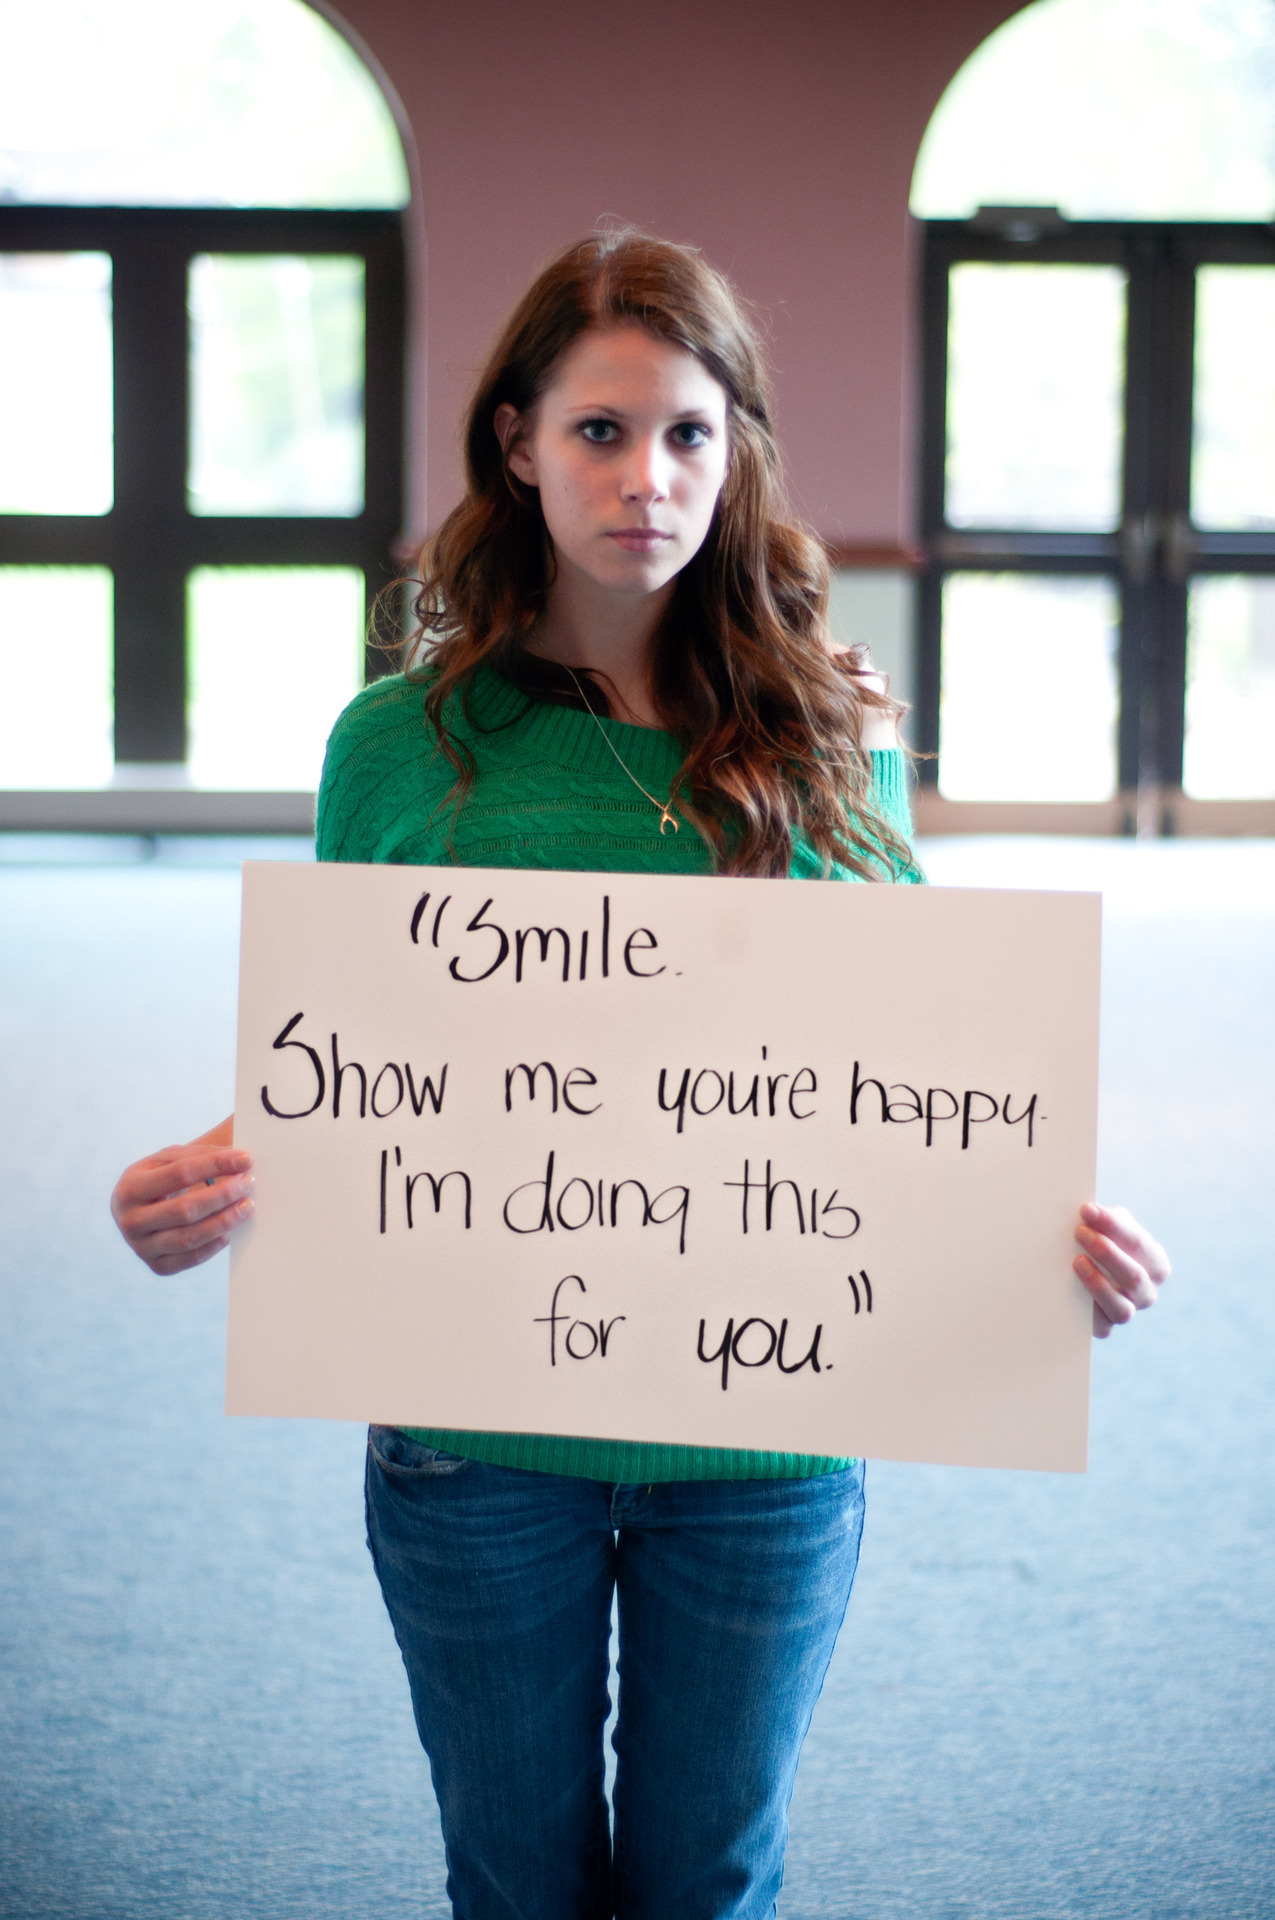 """lovebeinghuman:  This is a pic taken from projectunbreakable.tumblr.com. Project Unbreakable was created in October of 2011 by Grace Brown. Grace works with survivors of sexual assault, photographing them holding a poster with a quote from their attacker. Grace has photographed over two hundred people and has received over a thousand submissions. TIME magazine has also named it one of the top 30 Tumblr blogs to follow. If you are interested in participating by submitting in your own image, you may send an email to projectunbreakablesubmissions @gmail.com, and the pictures will appear at olapic.com/photos/projectunbreakable. If you are interested in being photographed, you may send her an email at projectunbreakable @gmail.com with the subject line """"Photograph Me.""""  powerful"""